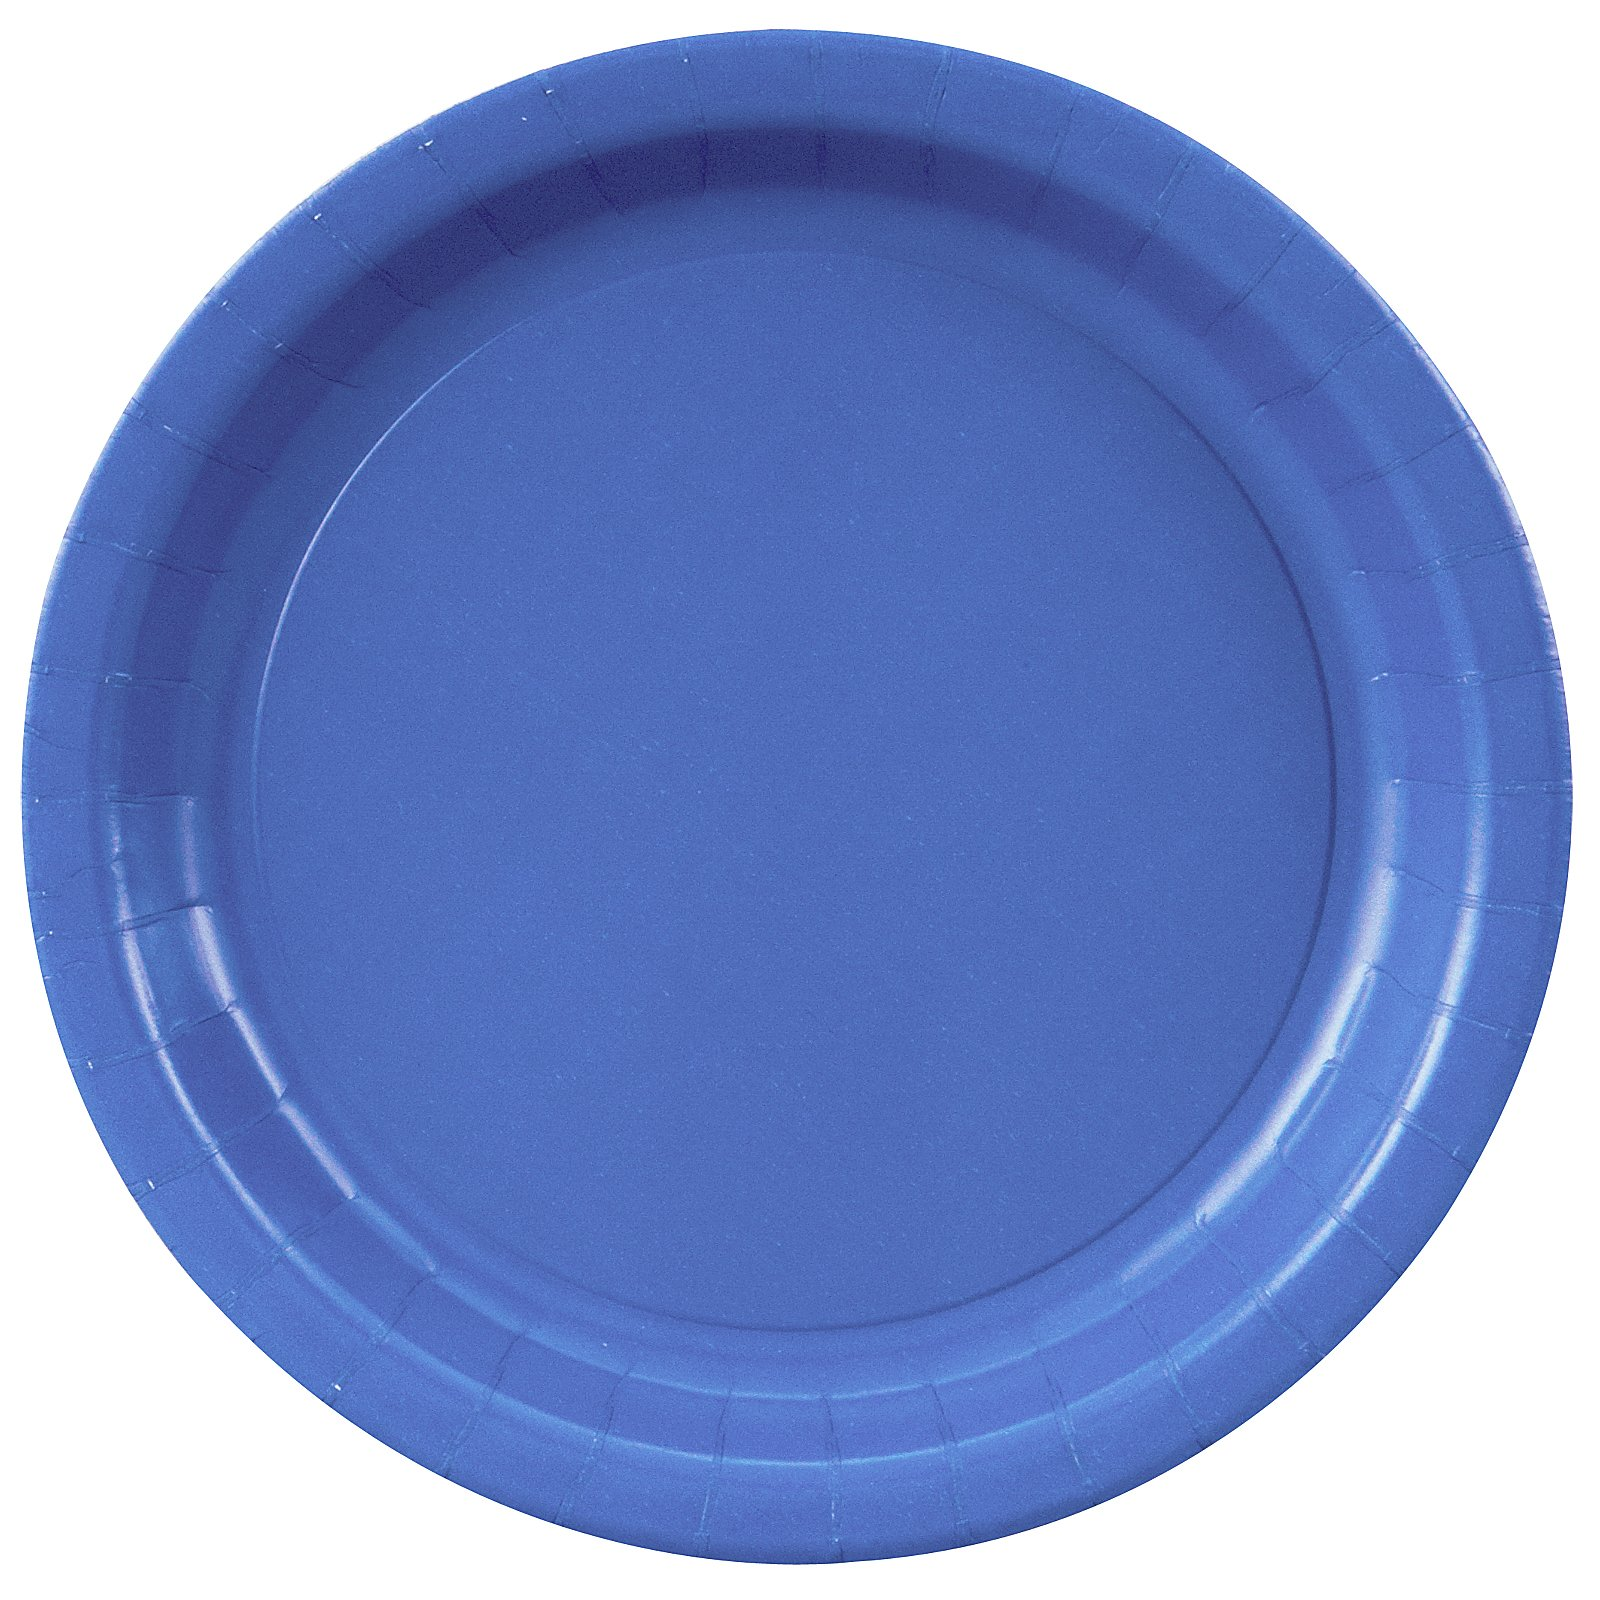 True Blue (Blue) Paper Dinner Plates (24 count)